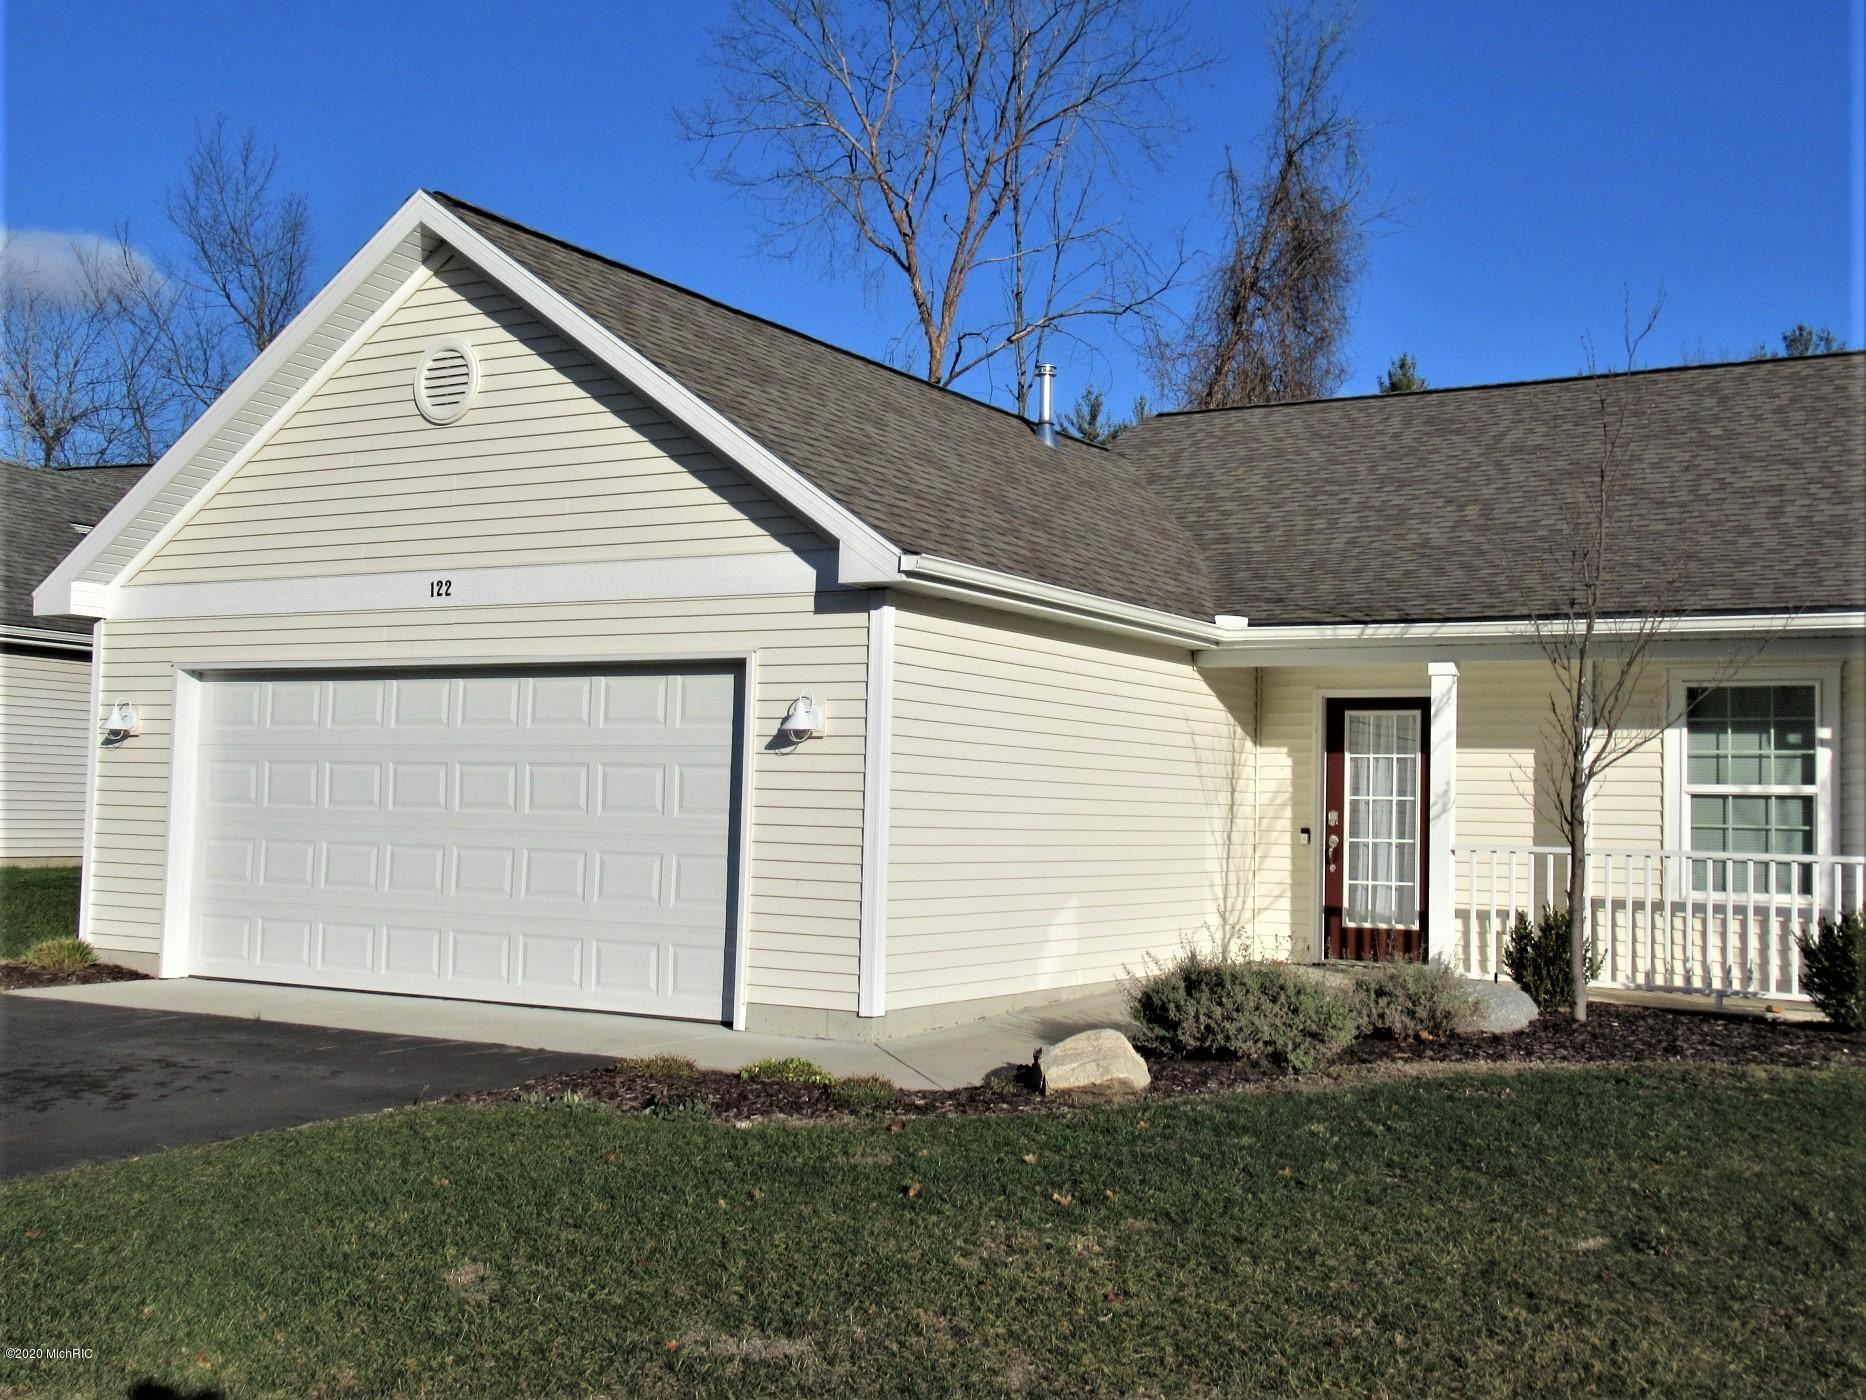 122 Depot Hill Court, Allegan, MI 49010 - MLS#: 20048852